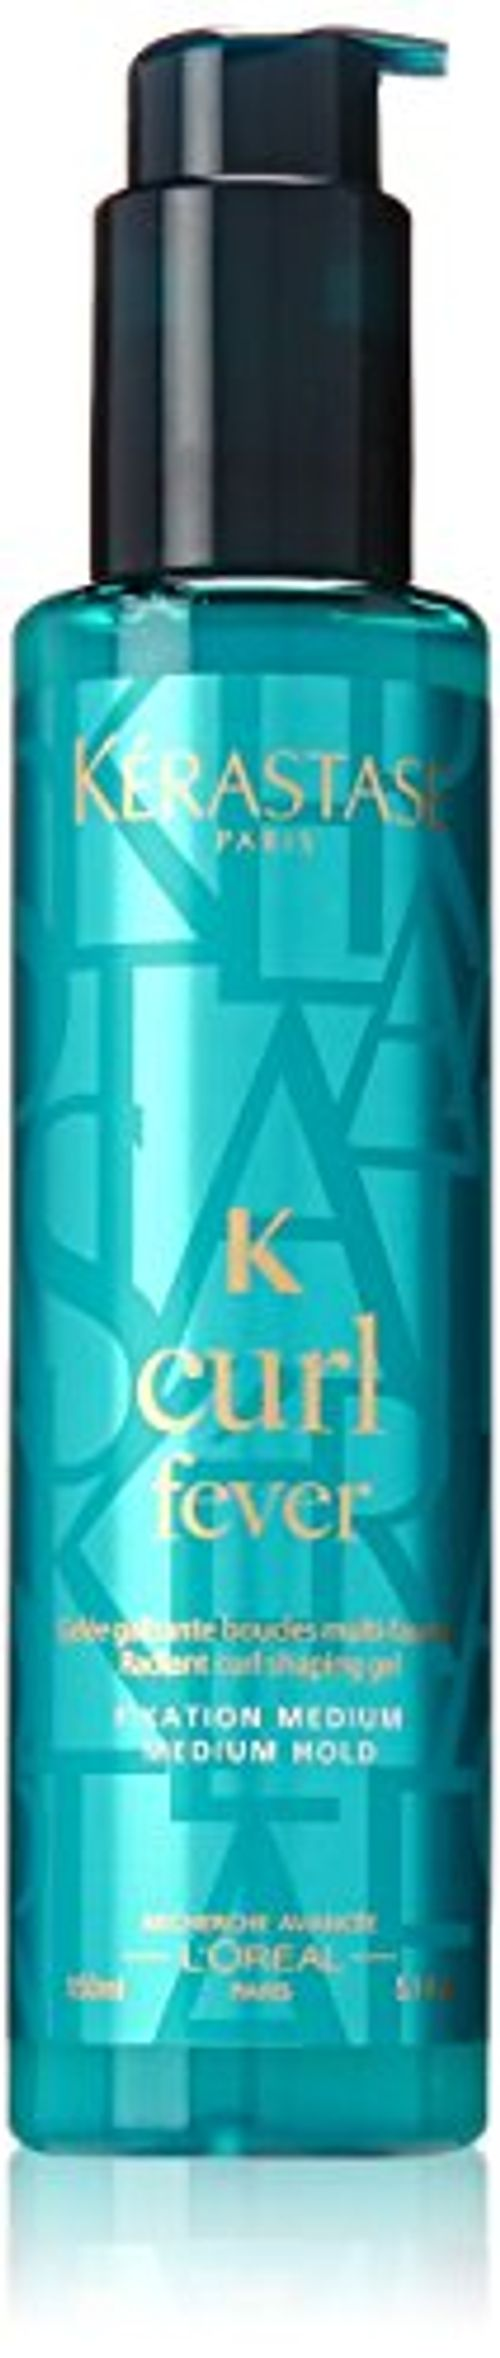 photo Wallpaper of Kerastase-KERASTASE K Curl Fever 150 Ml-